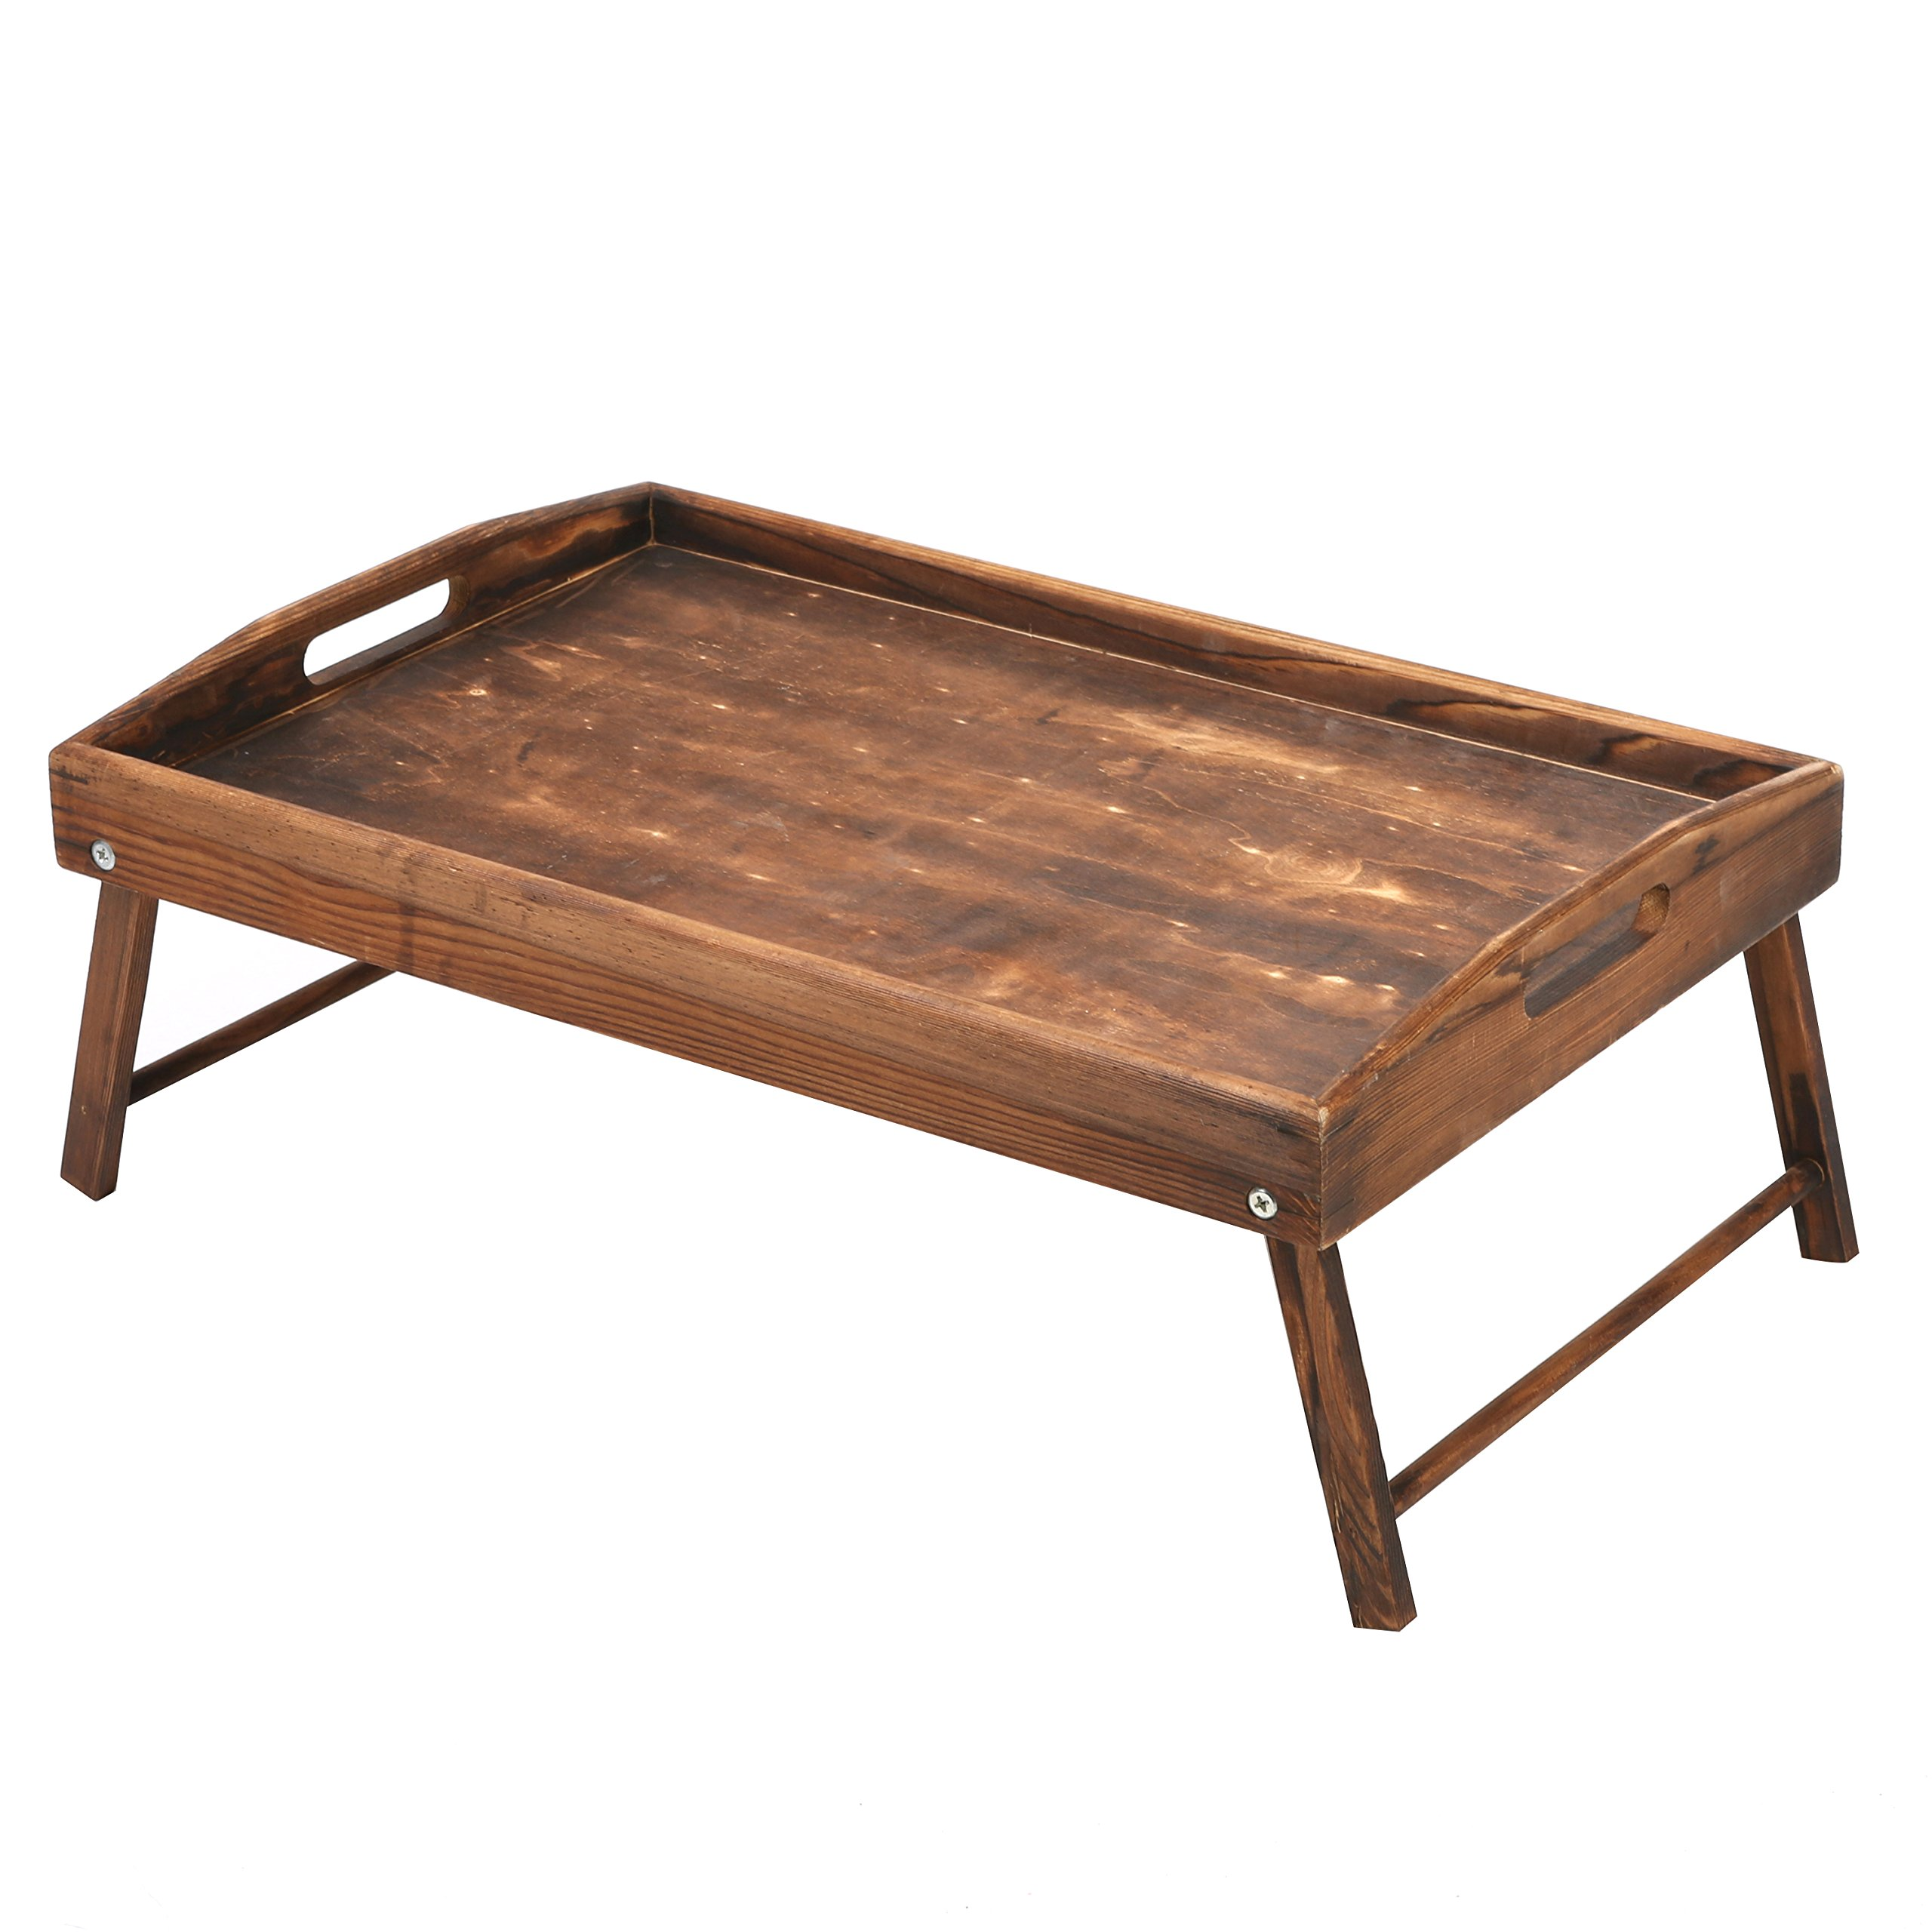 Country Rustic Torched Wood Food Serving Tray, Breakfast in Bed Table with Folding Legs by MyGift (Image #3)